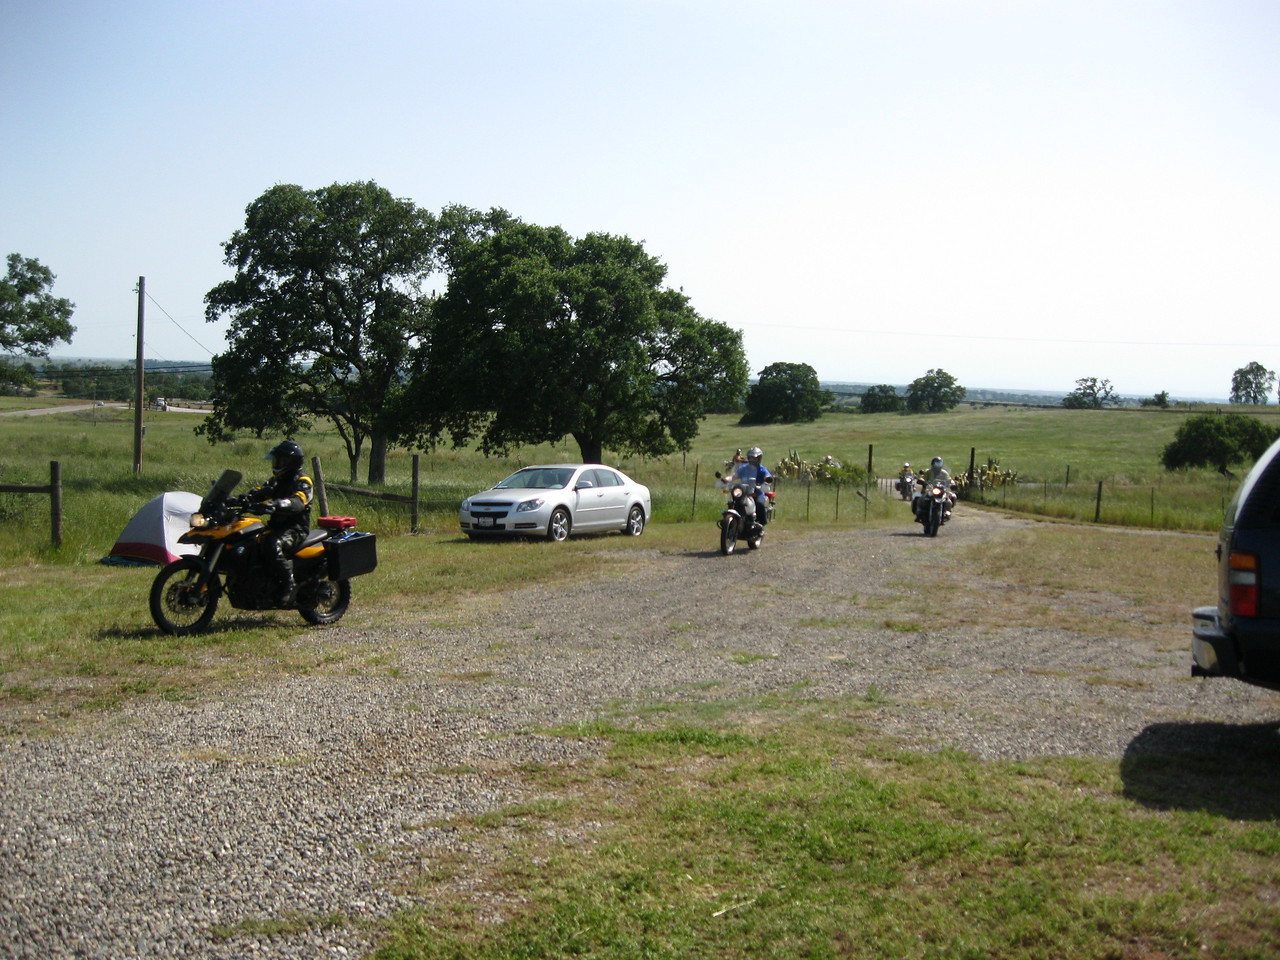 The GS Tour returns to the campground.